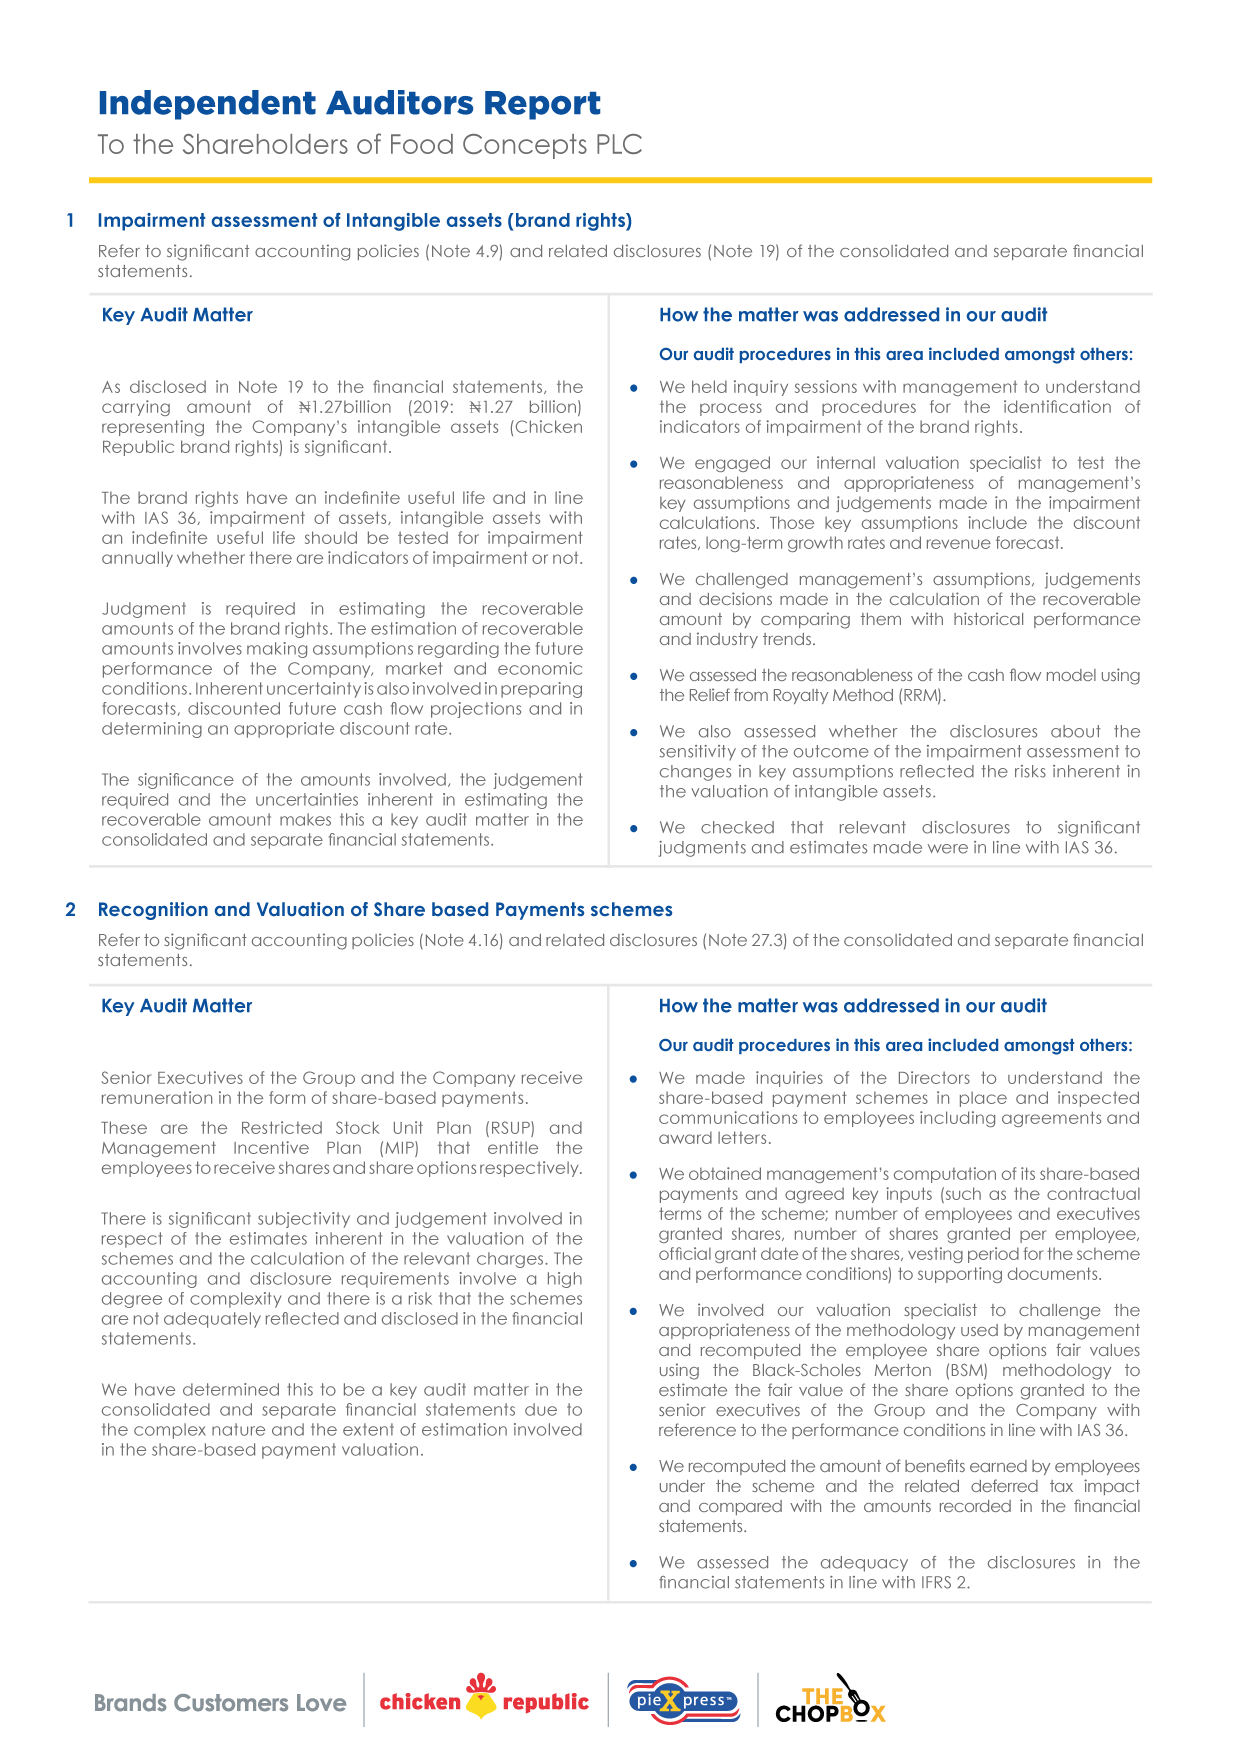 Food Concepts - Independent Auditors Report - Page 2